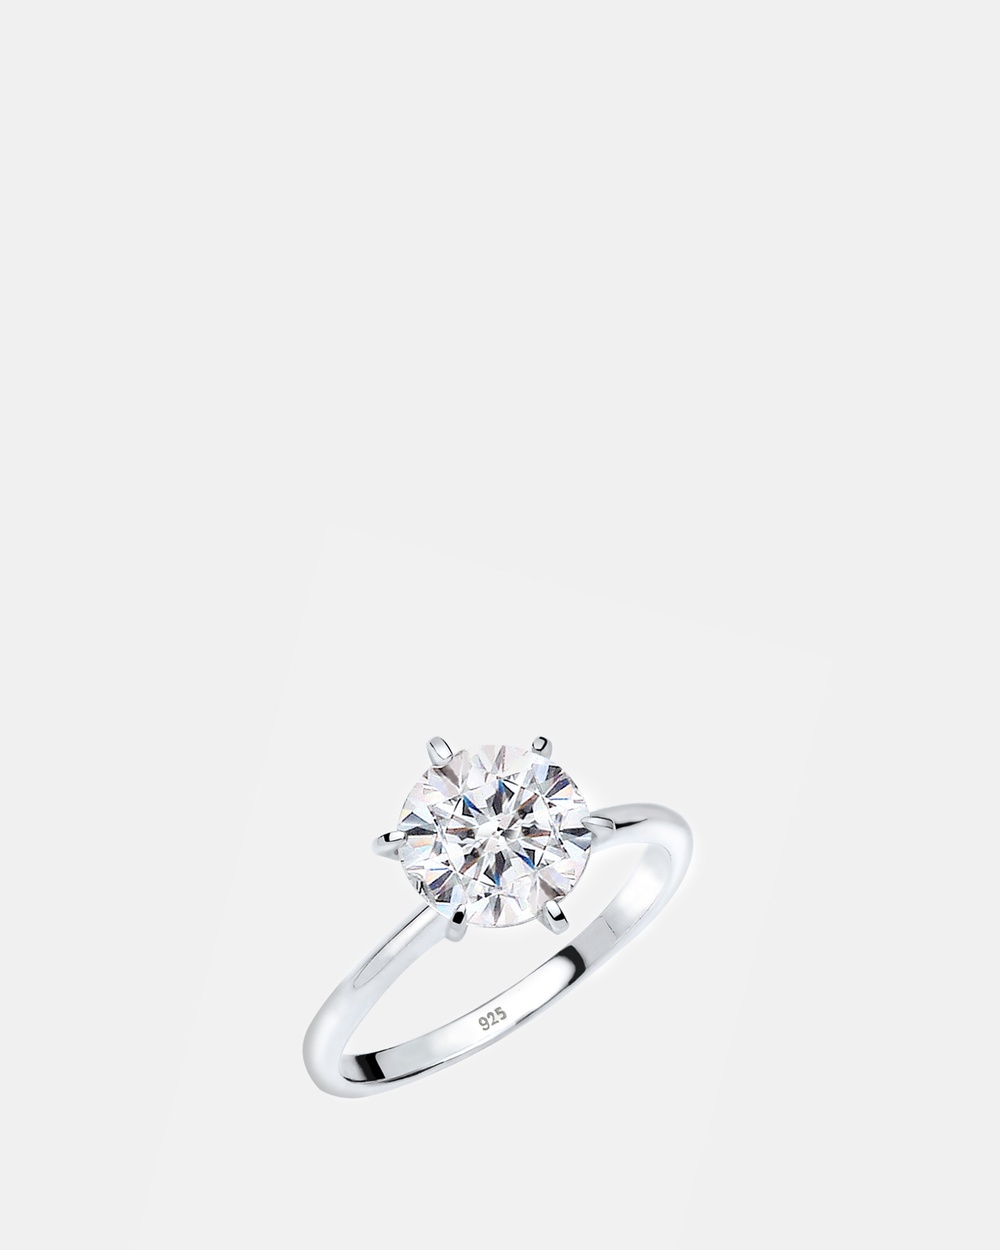 Elli Jewelry Ring Engagement 925 Sterling Silver Crystals Jewellery white